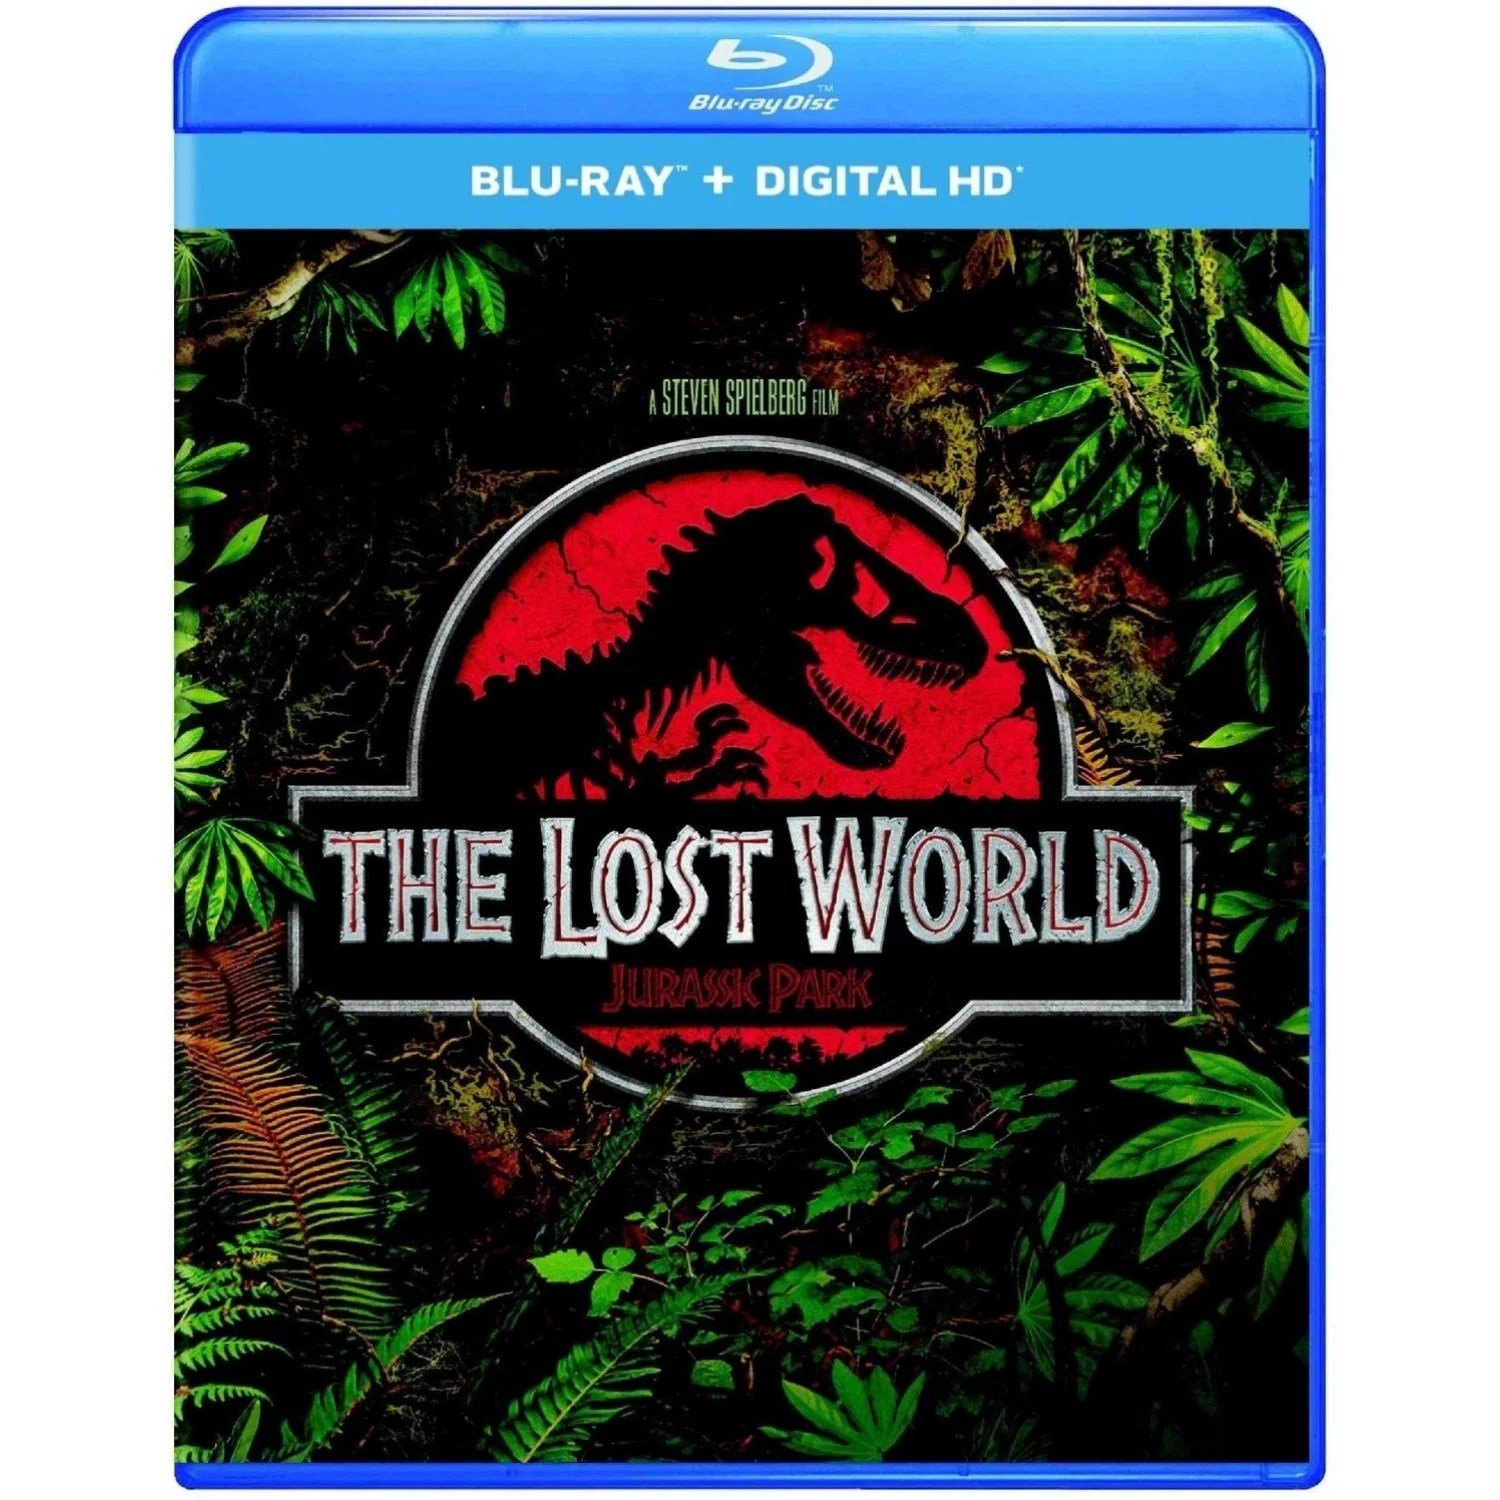 The Lost World Jurassic Park Remastered Blu Ray